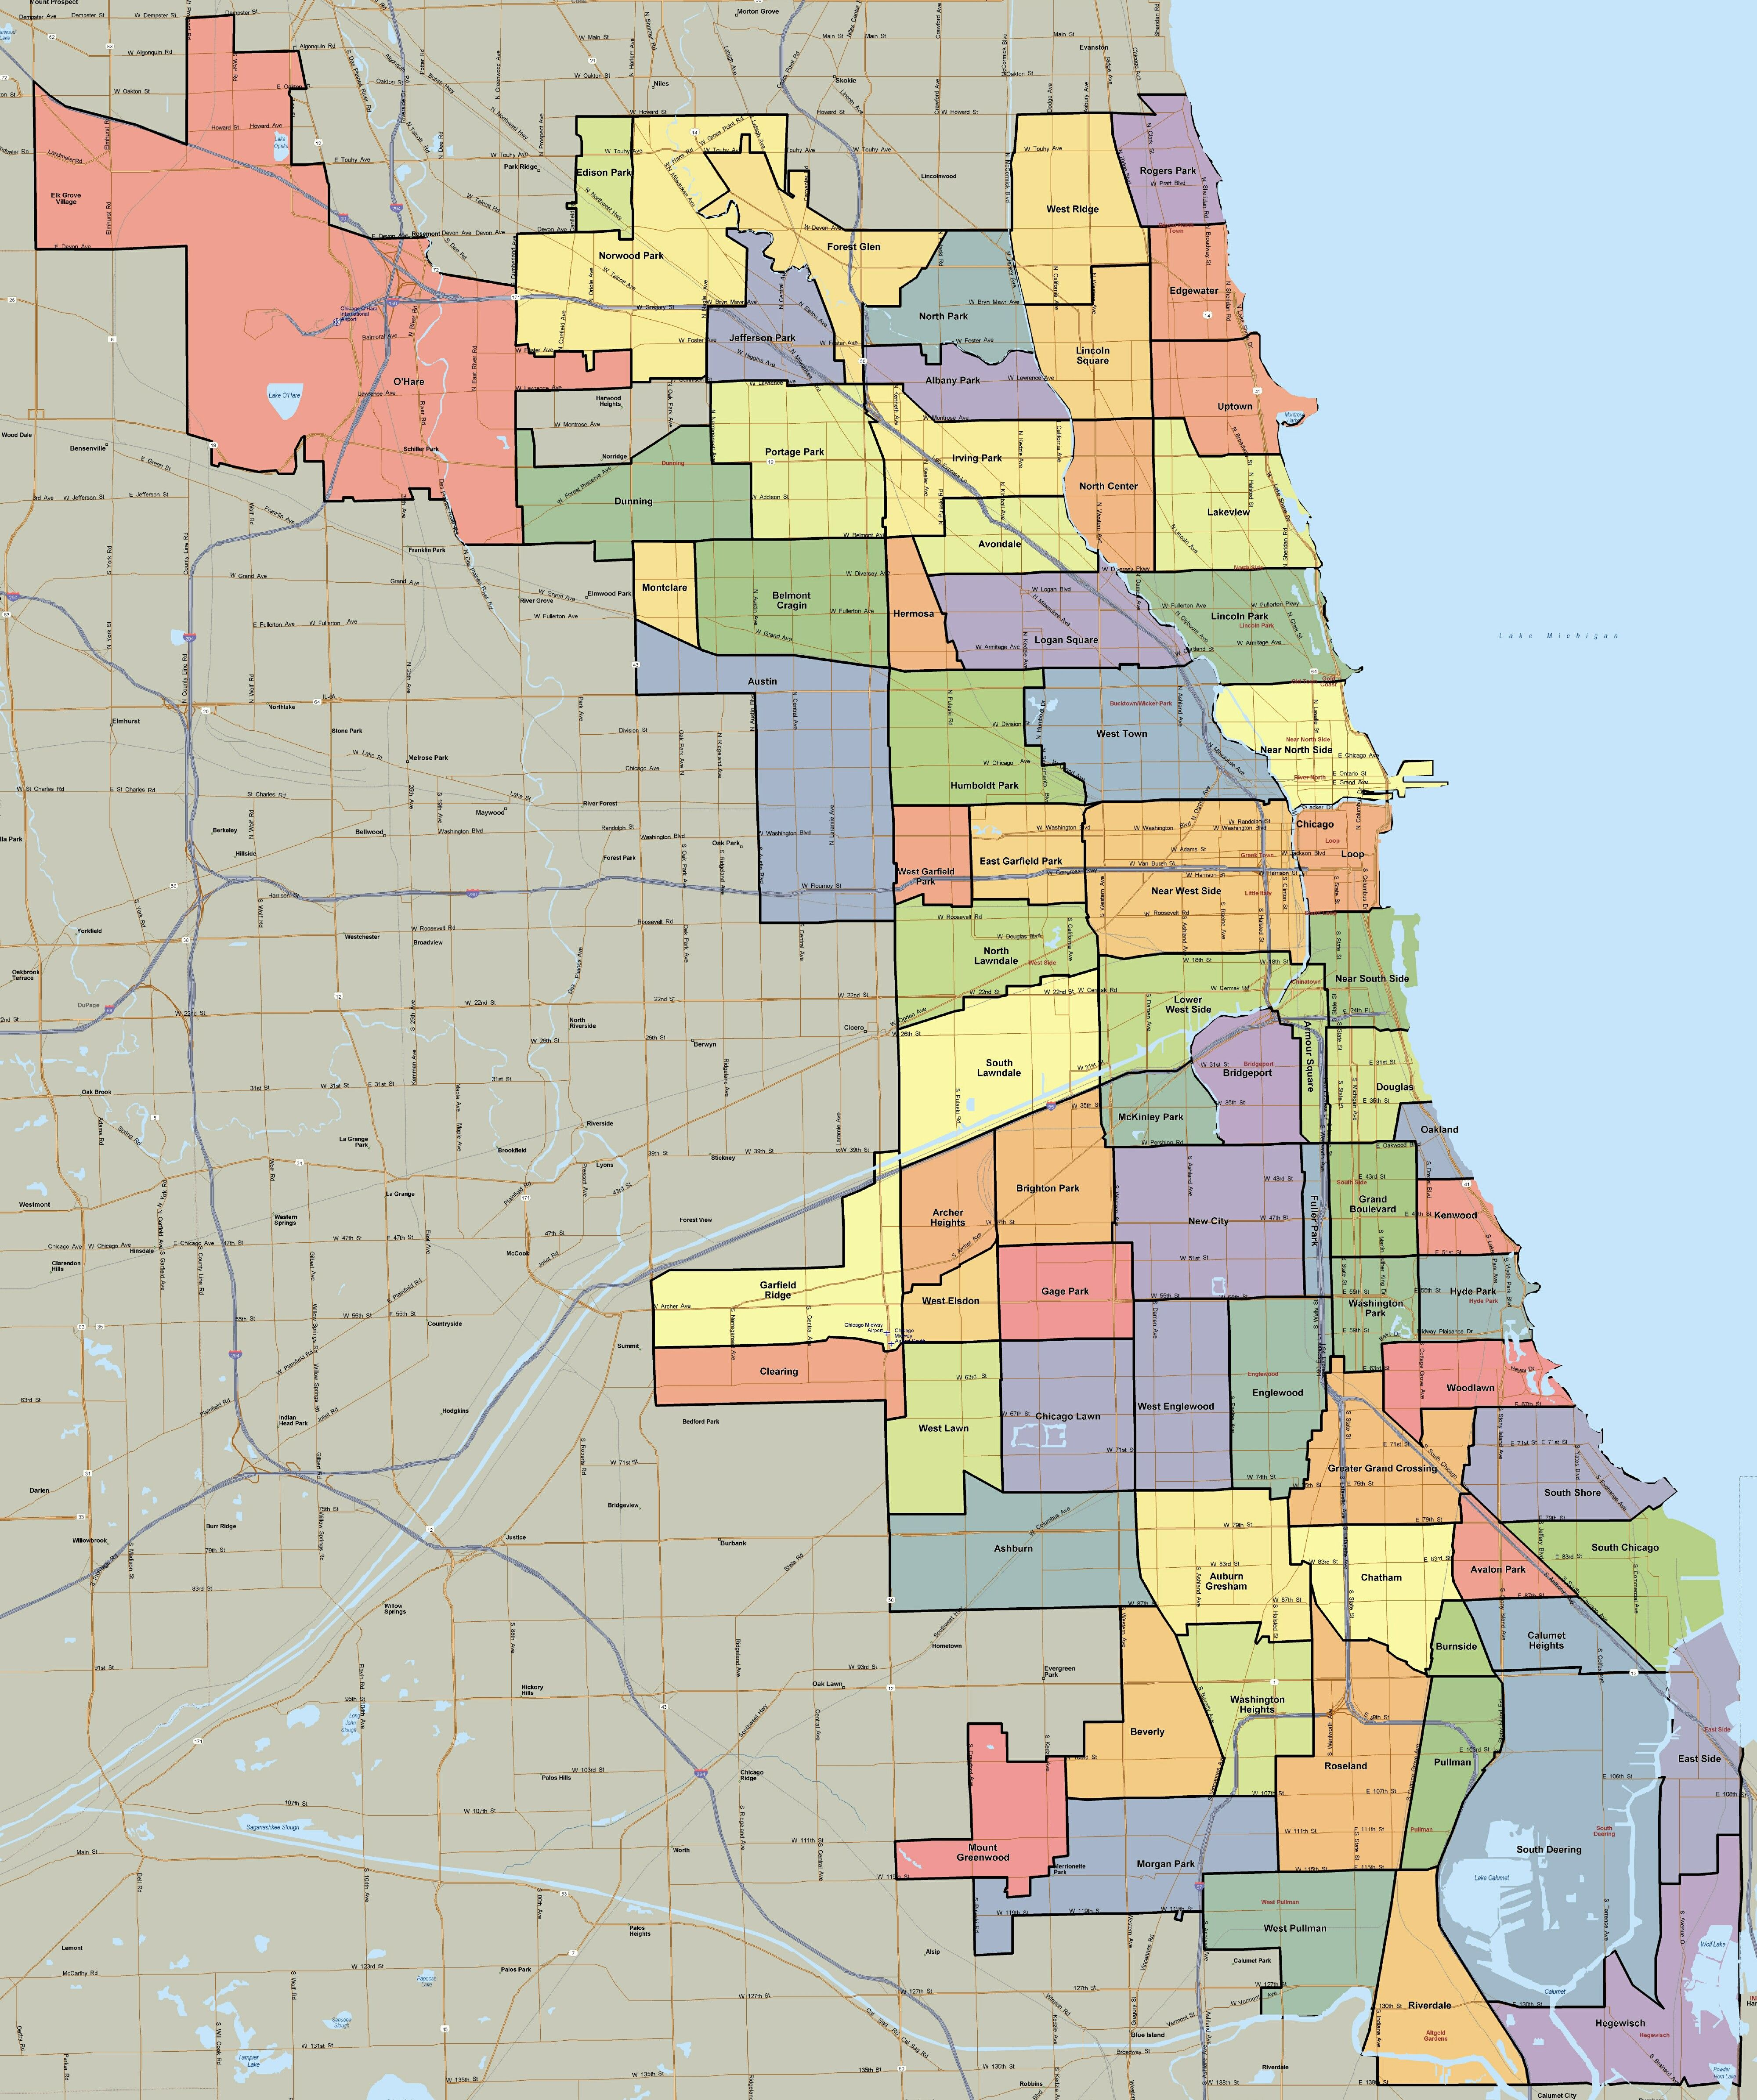 Chicago Neighborhood Map Mortgage Essentials Pinterest More - Chicago kayak map